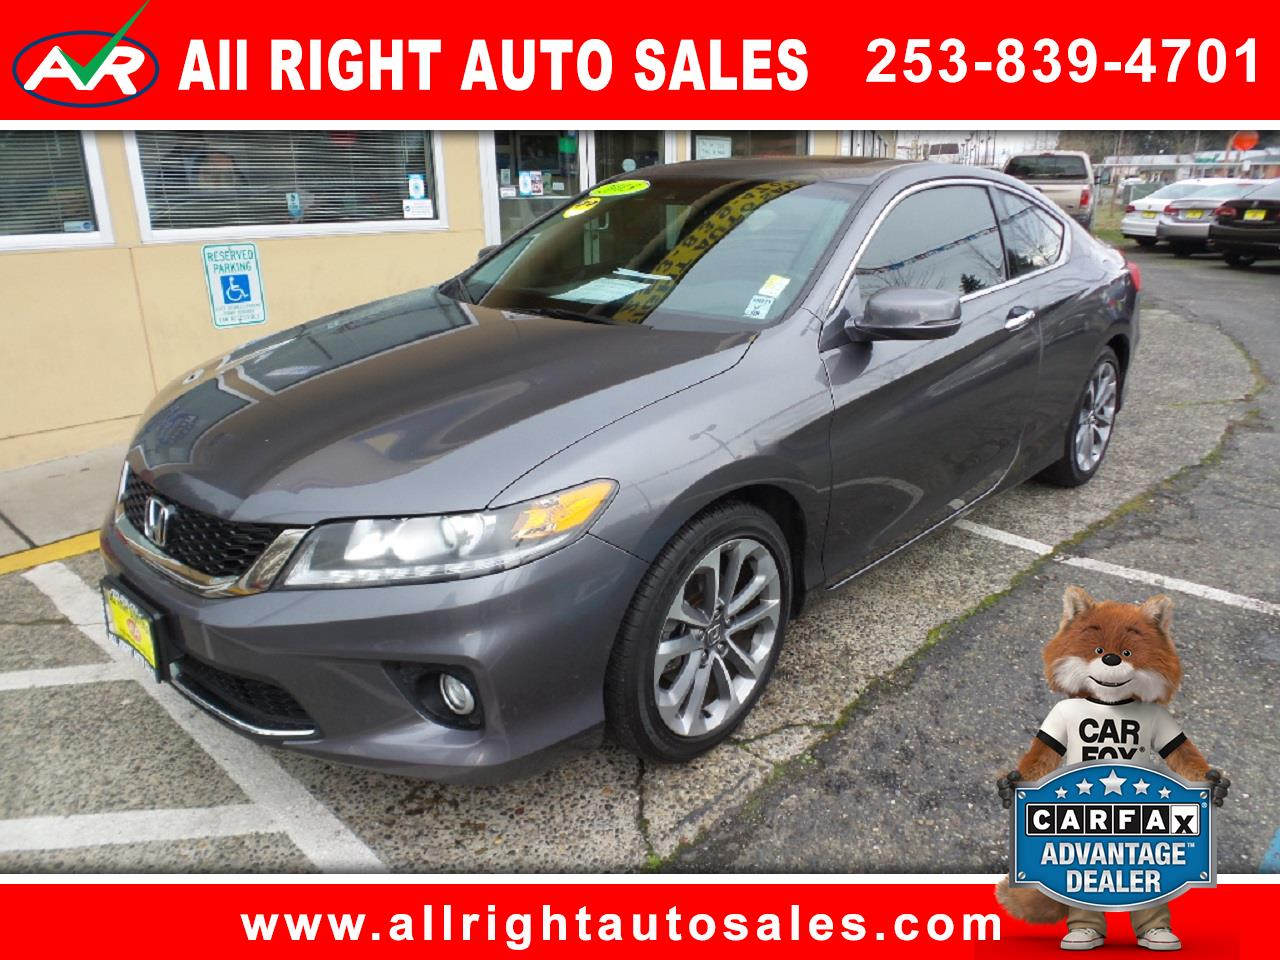 2013 Honda Accord EX-L V6 Coupe AT